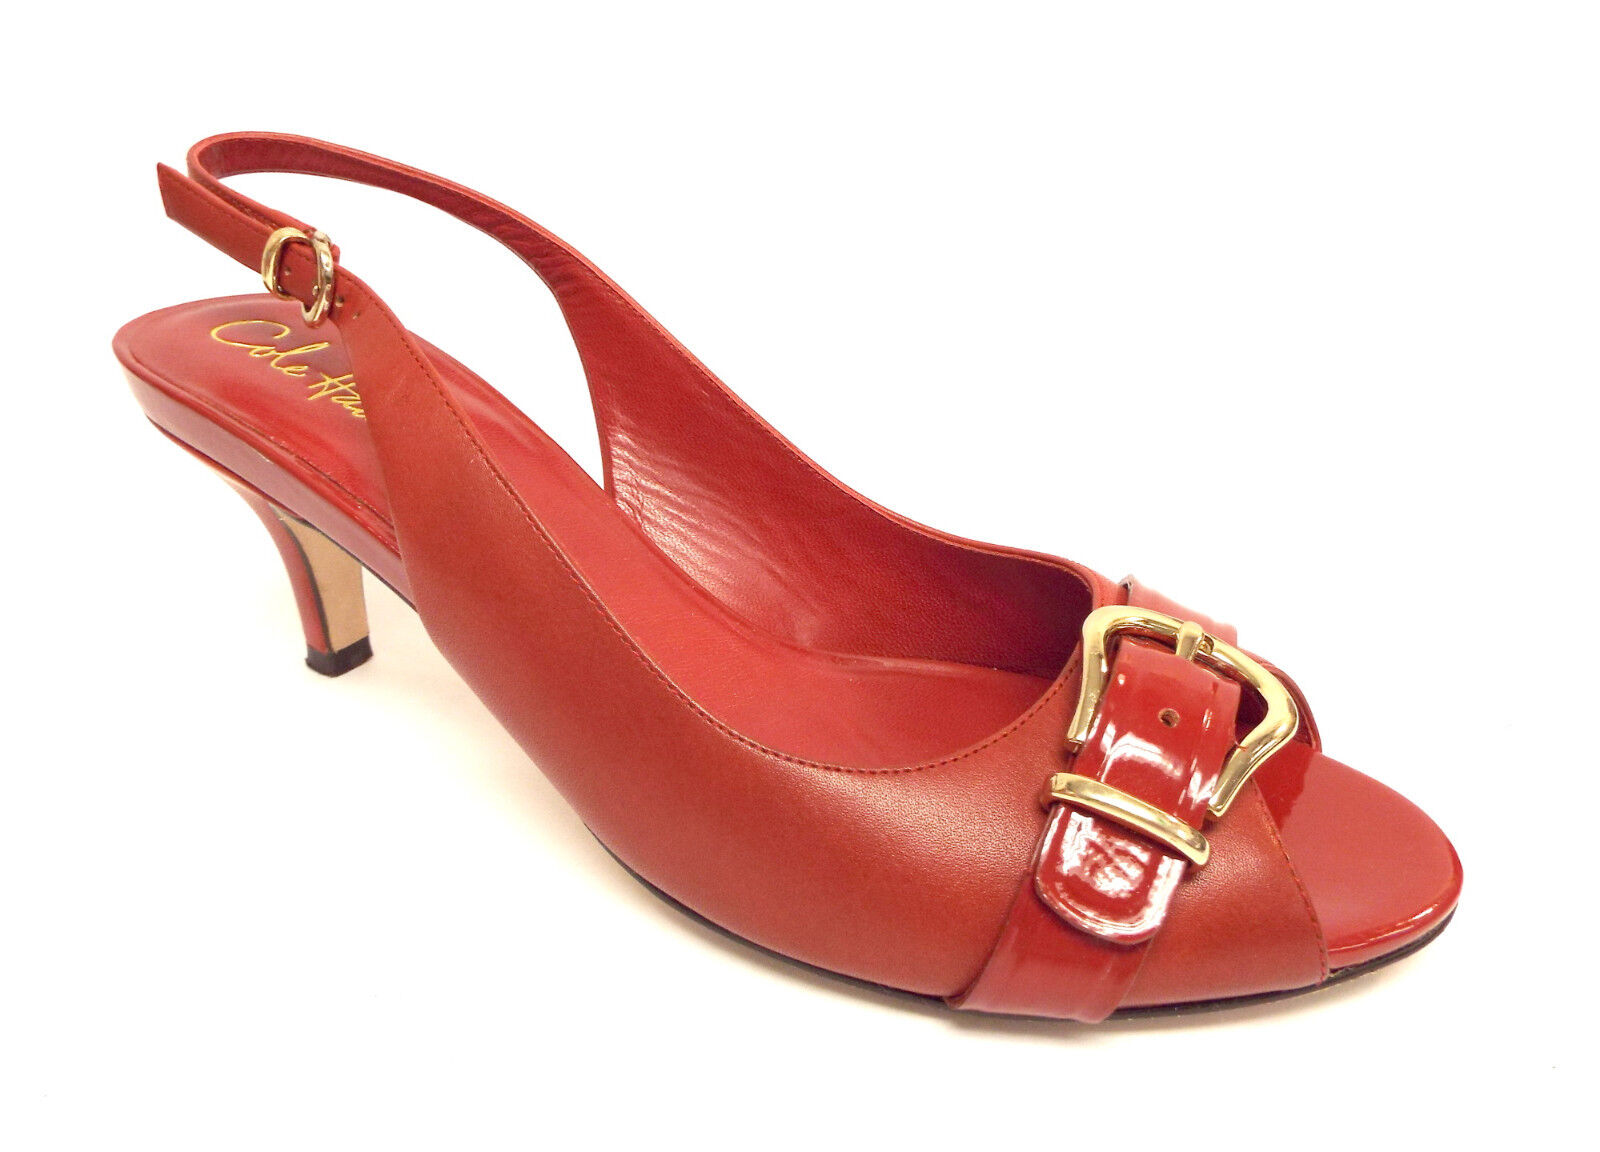 COLE HAAN Size 9 Red Leather Slingback Heels Pumps shoes N. Air